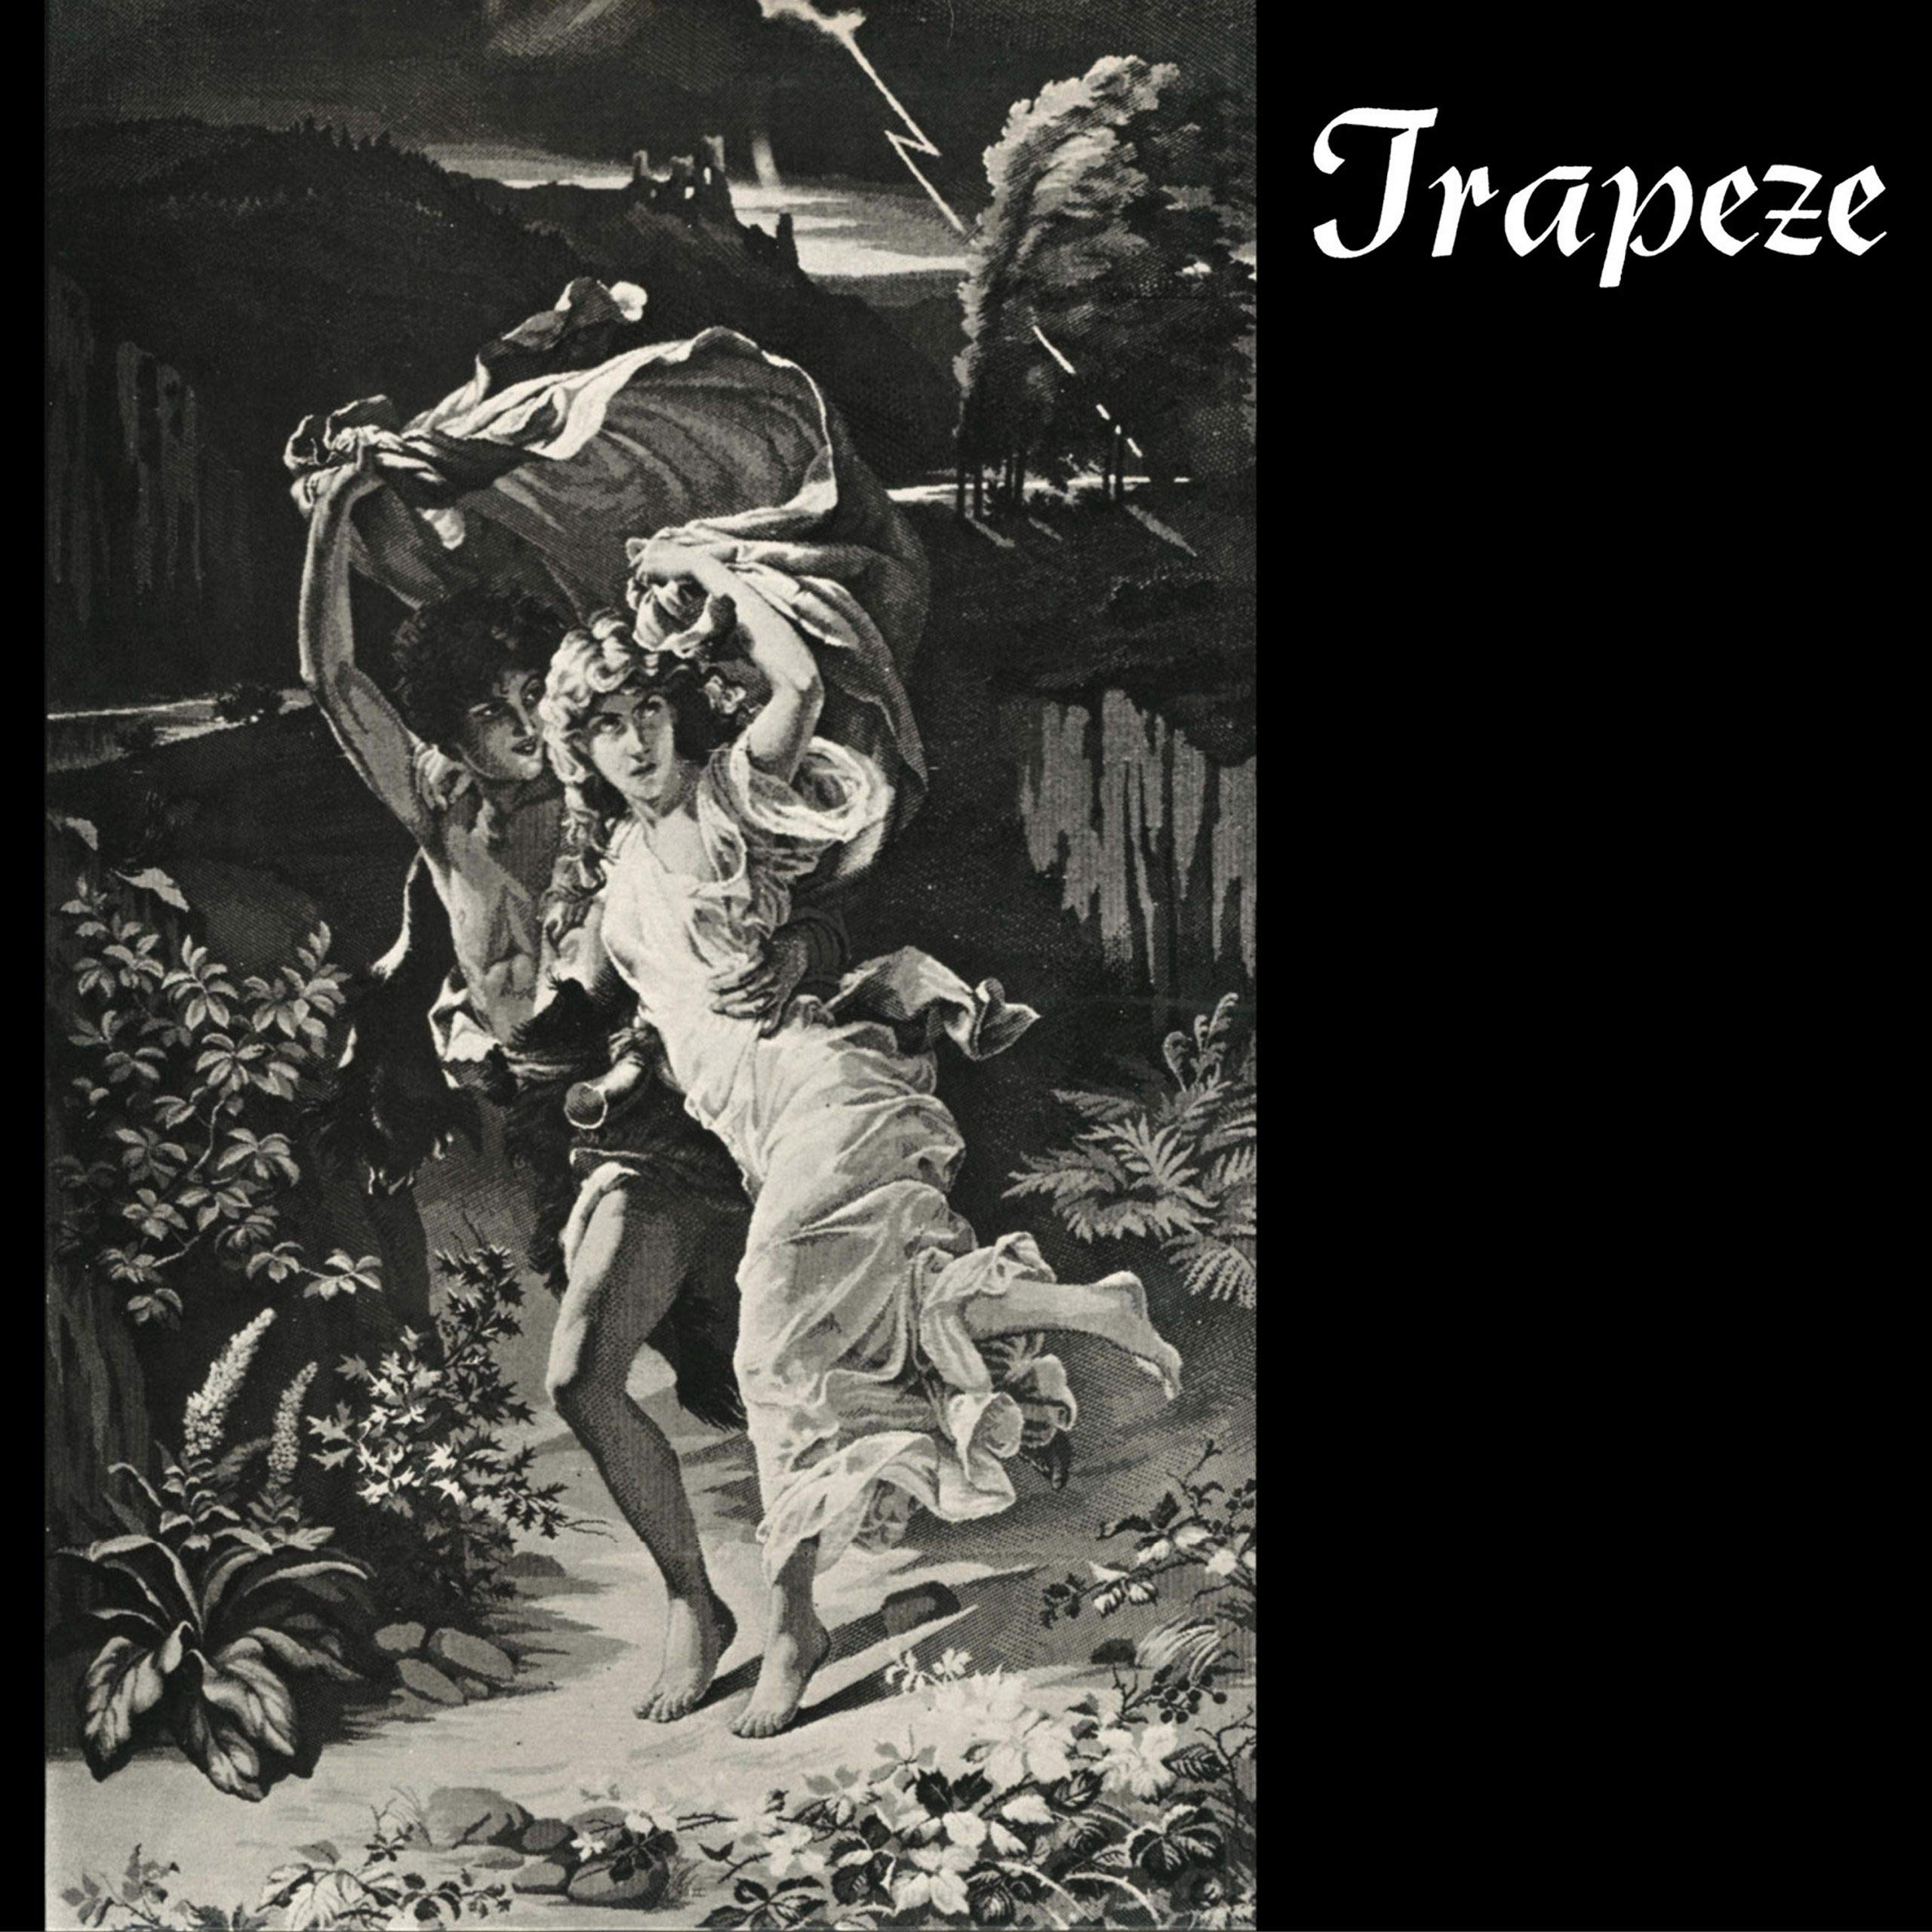 Trapeze-Trapeze-(PURPLE022D)-REMASTERED DELUXE EDITION-2CD-FLAC-2020-WRE